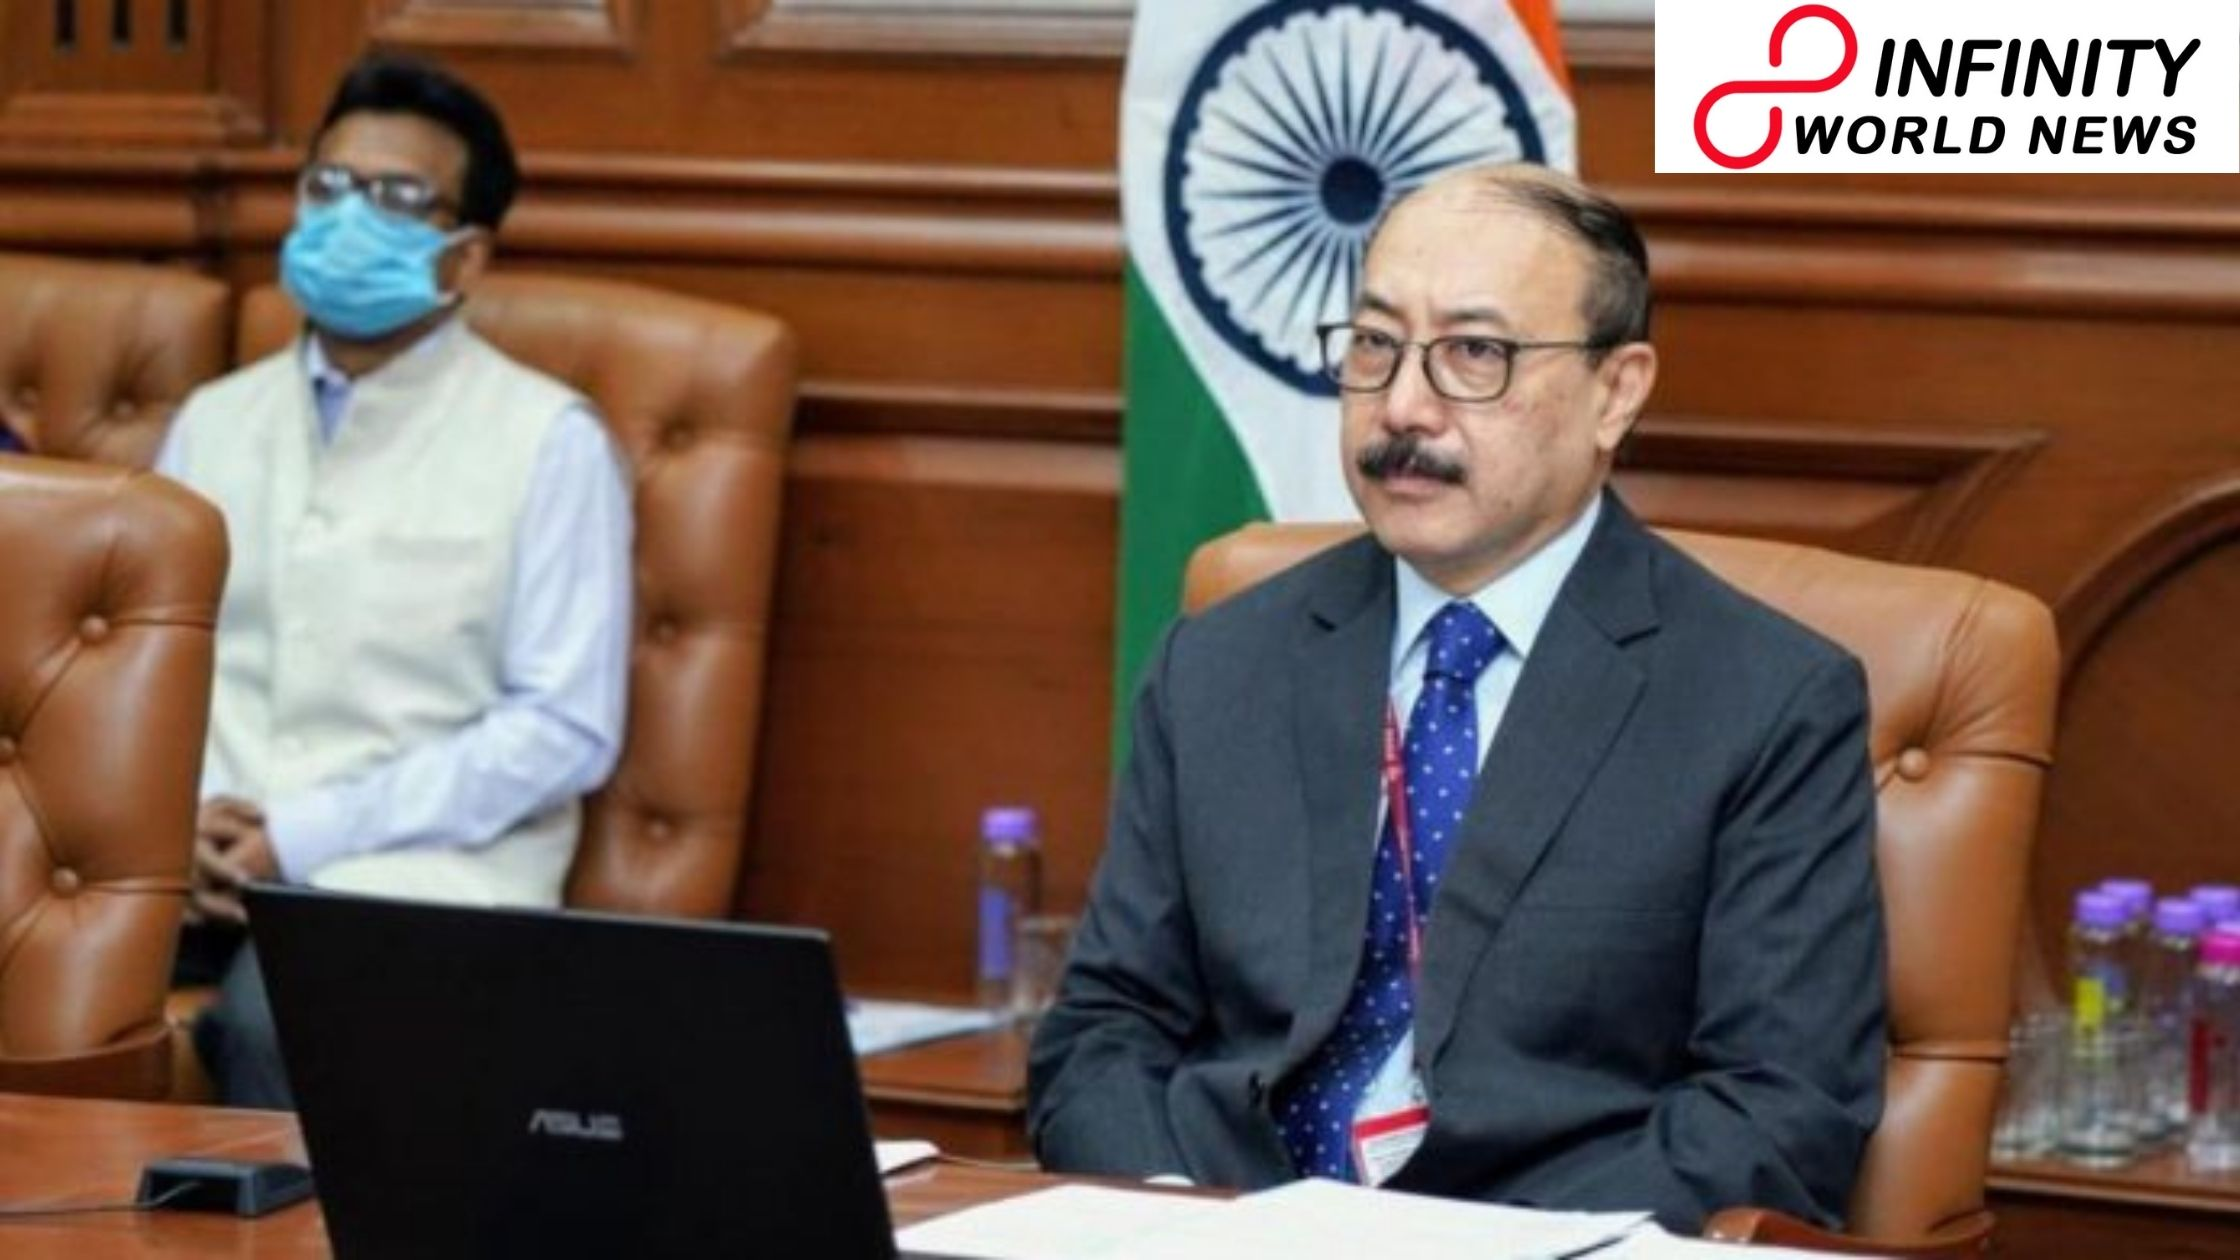 Foreign Secretary briefs ministers on militant terrorist plot thwarted by India